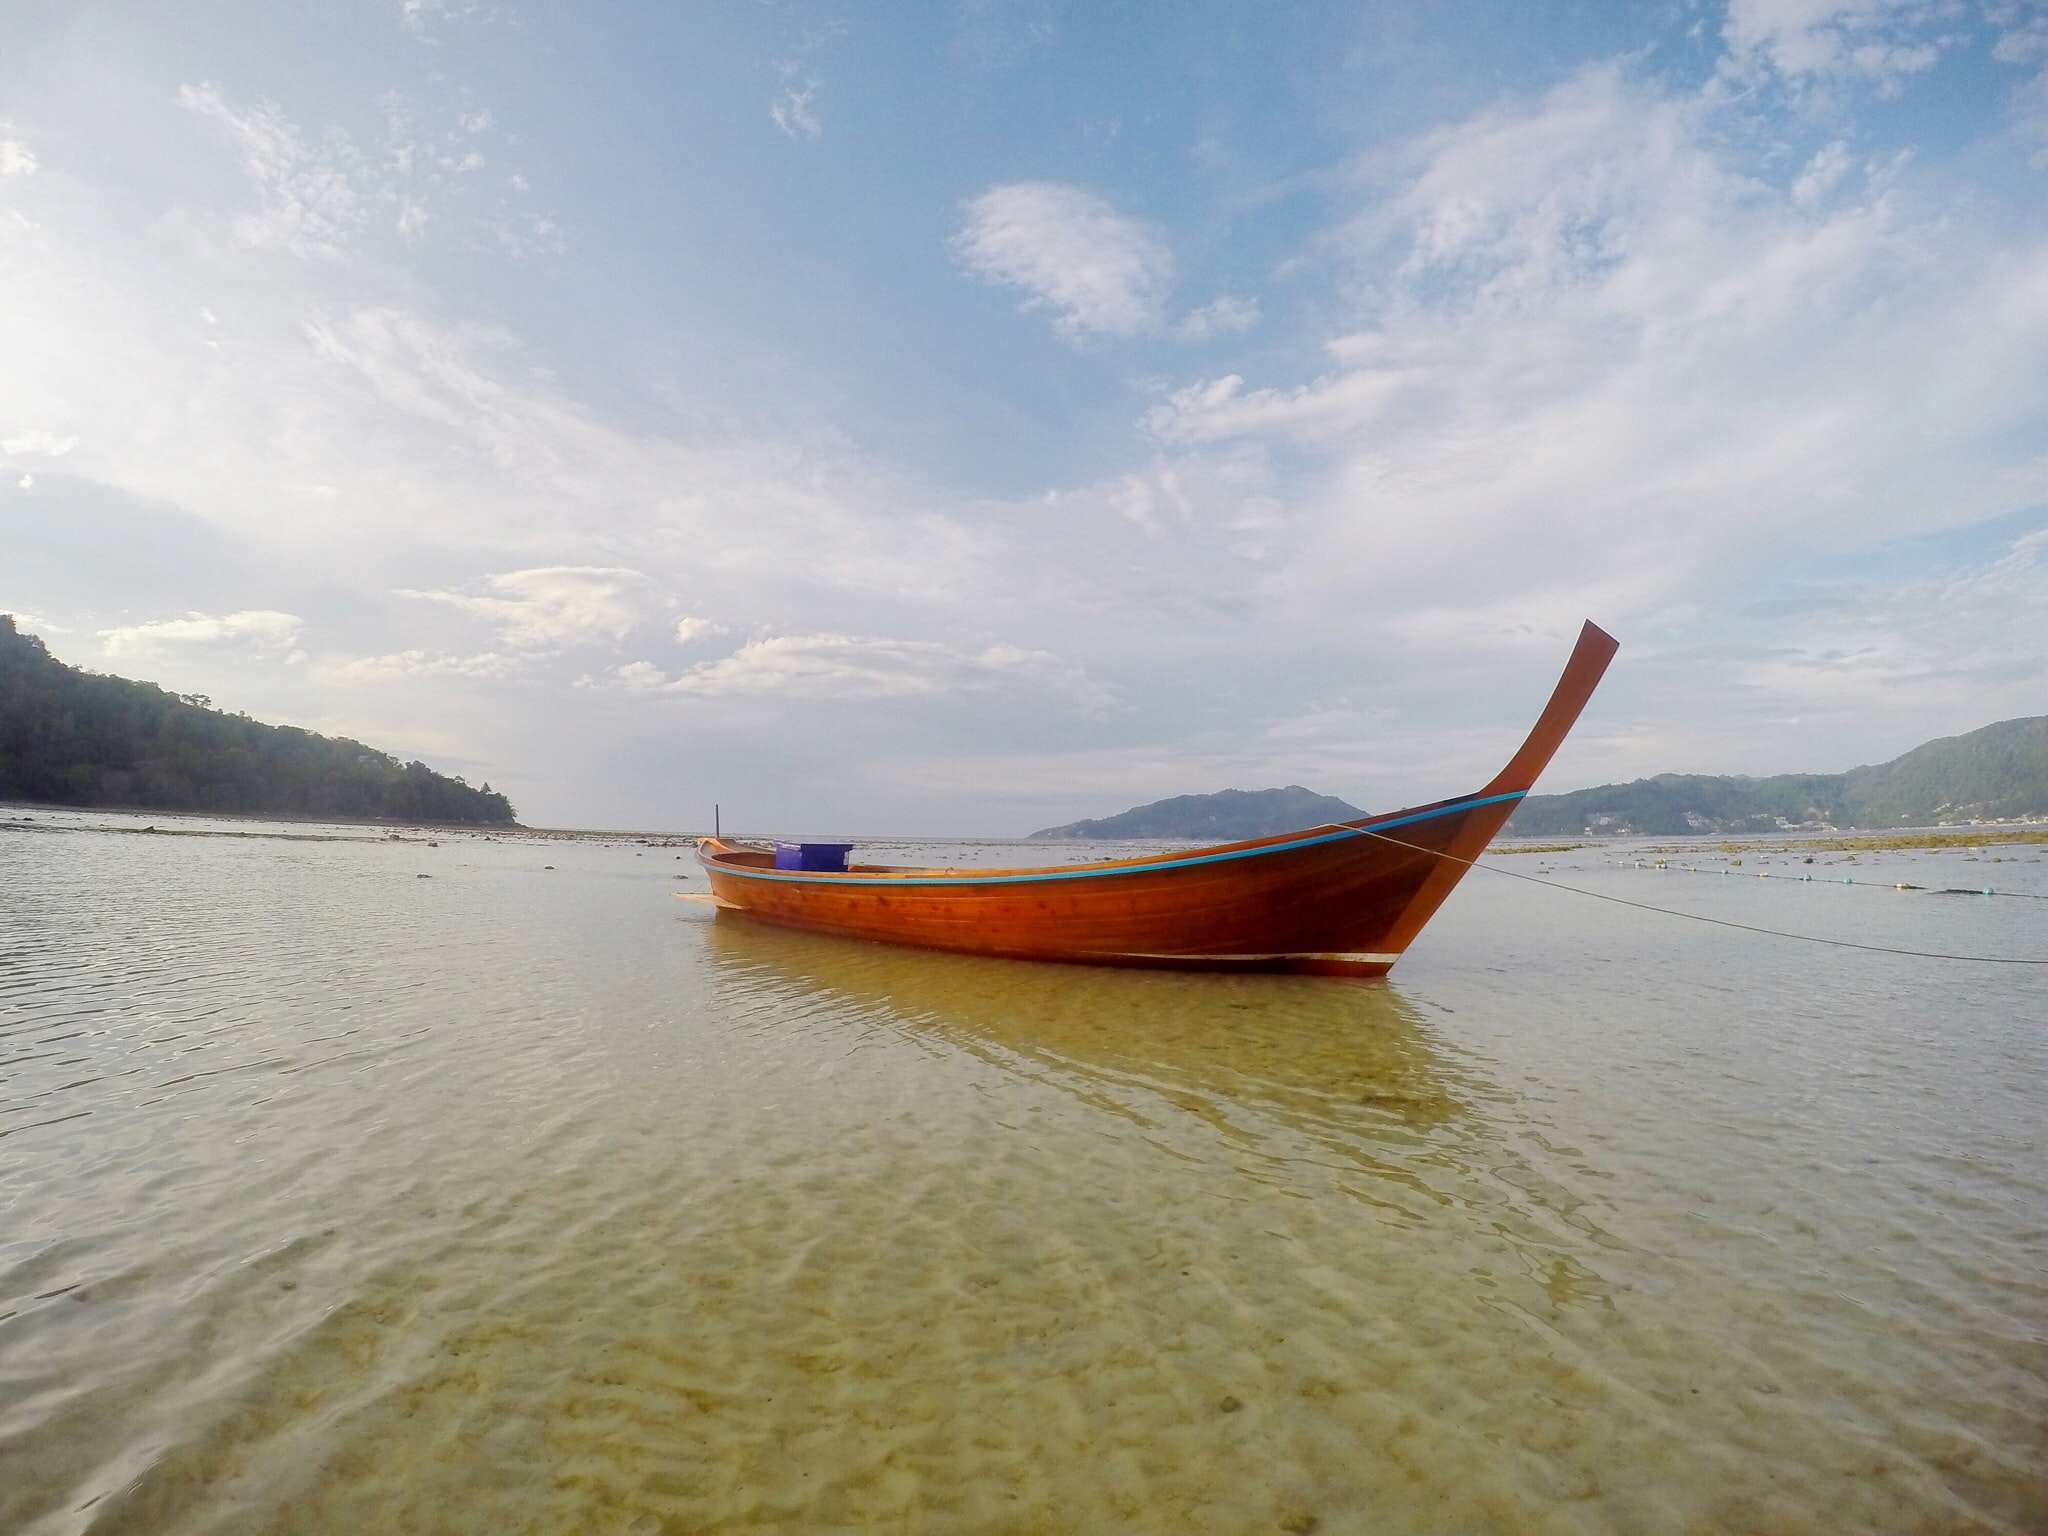 A red boat sitting in water near the shore.